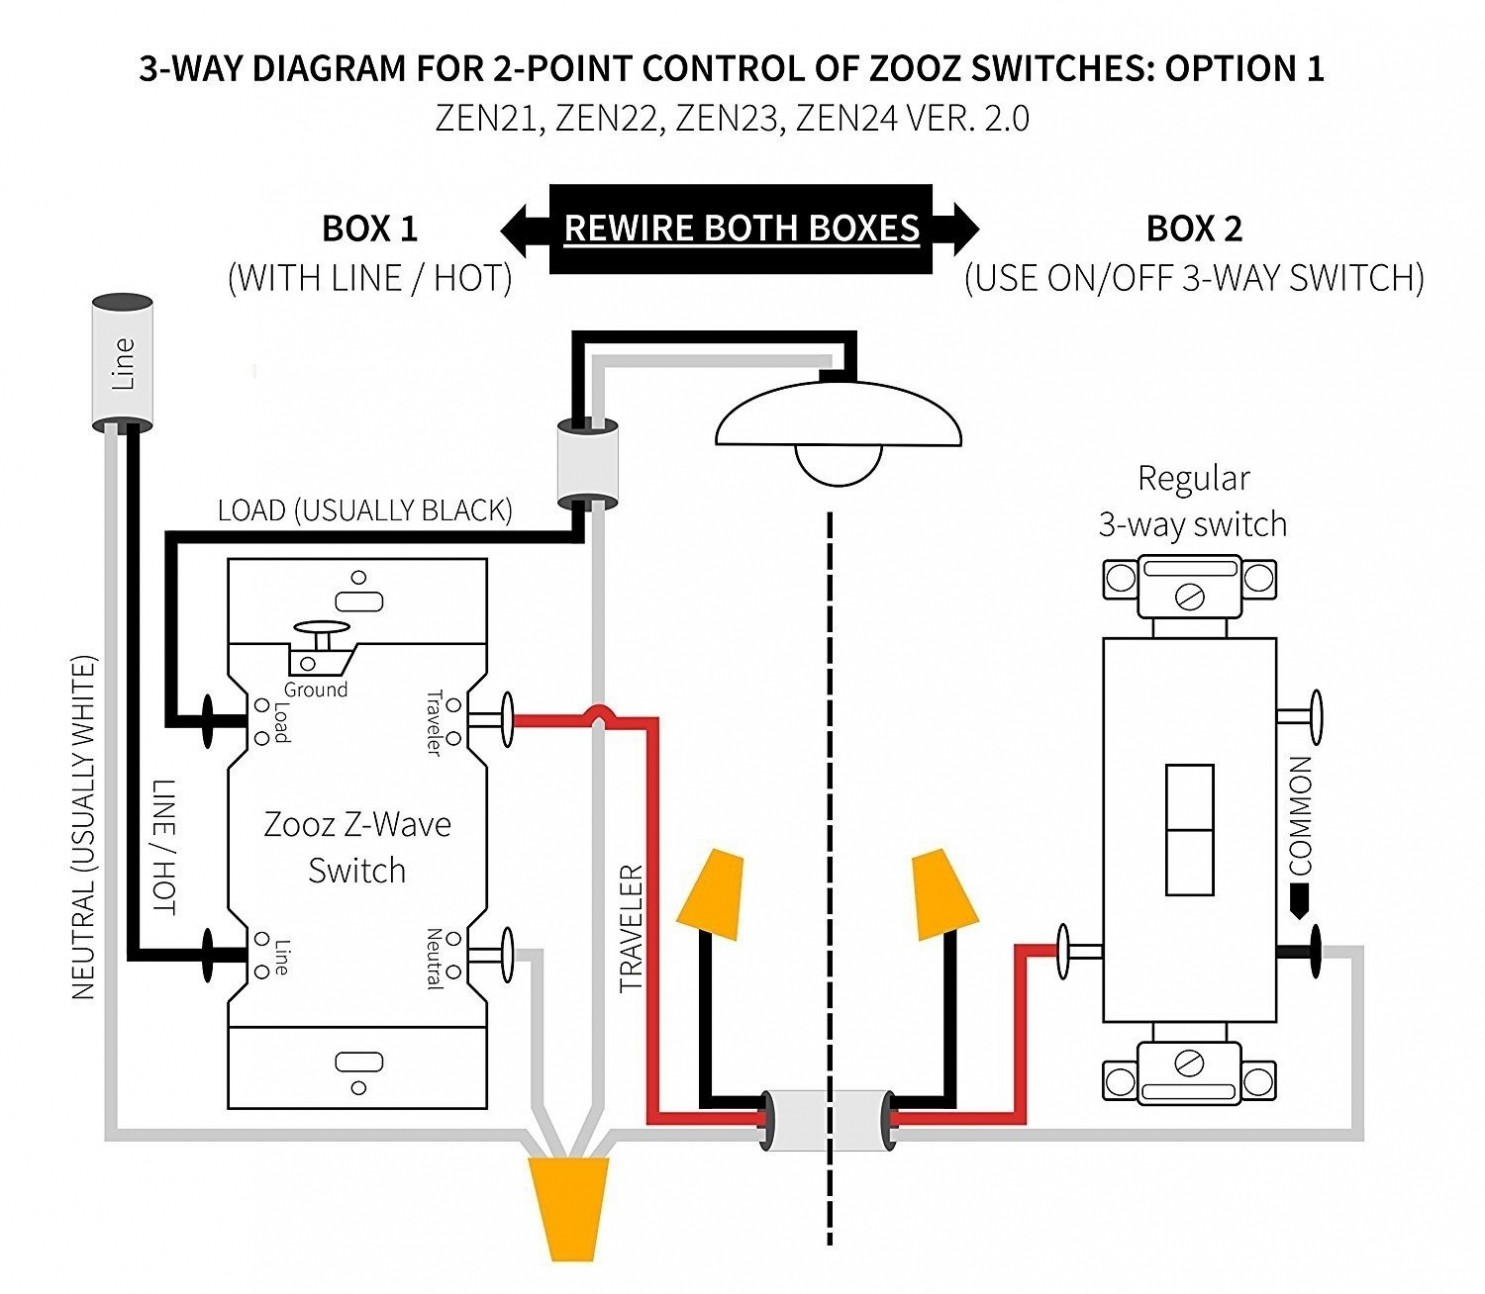 Insteon 3 Way Wiring Diagram Trusted Schematics 2 Switch 1 Light Image Switches One To